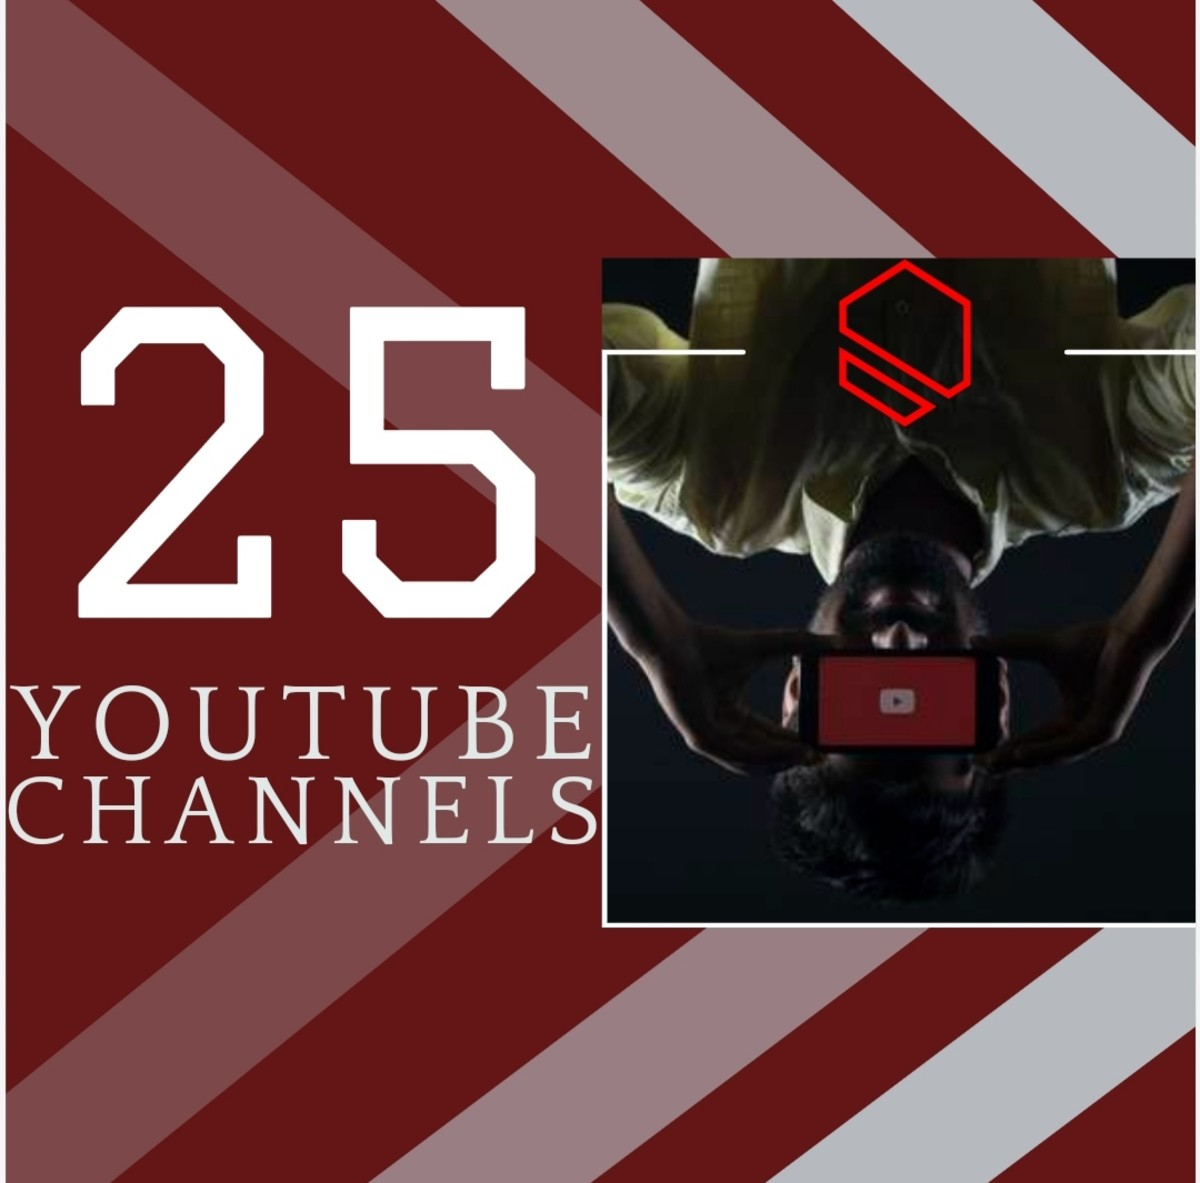 25 Youtube Channels You Should Binge Watch Turbofuture Technology Ready for another trip to the weird side of trvid? youtube channels you should binge watch